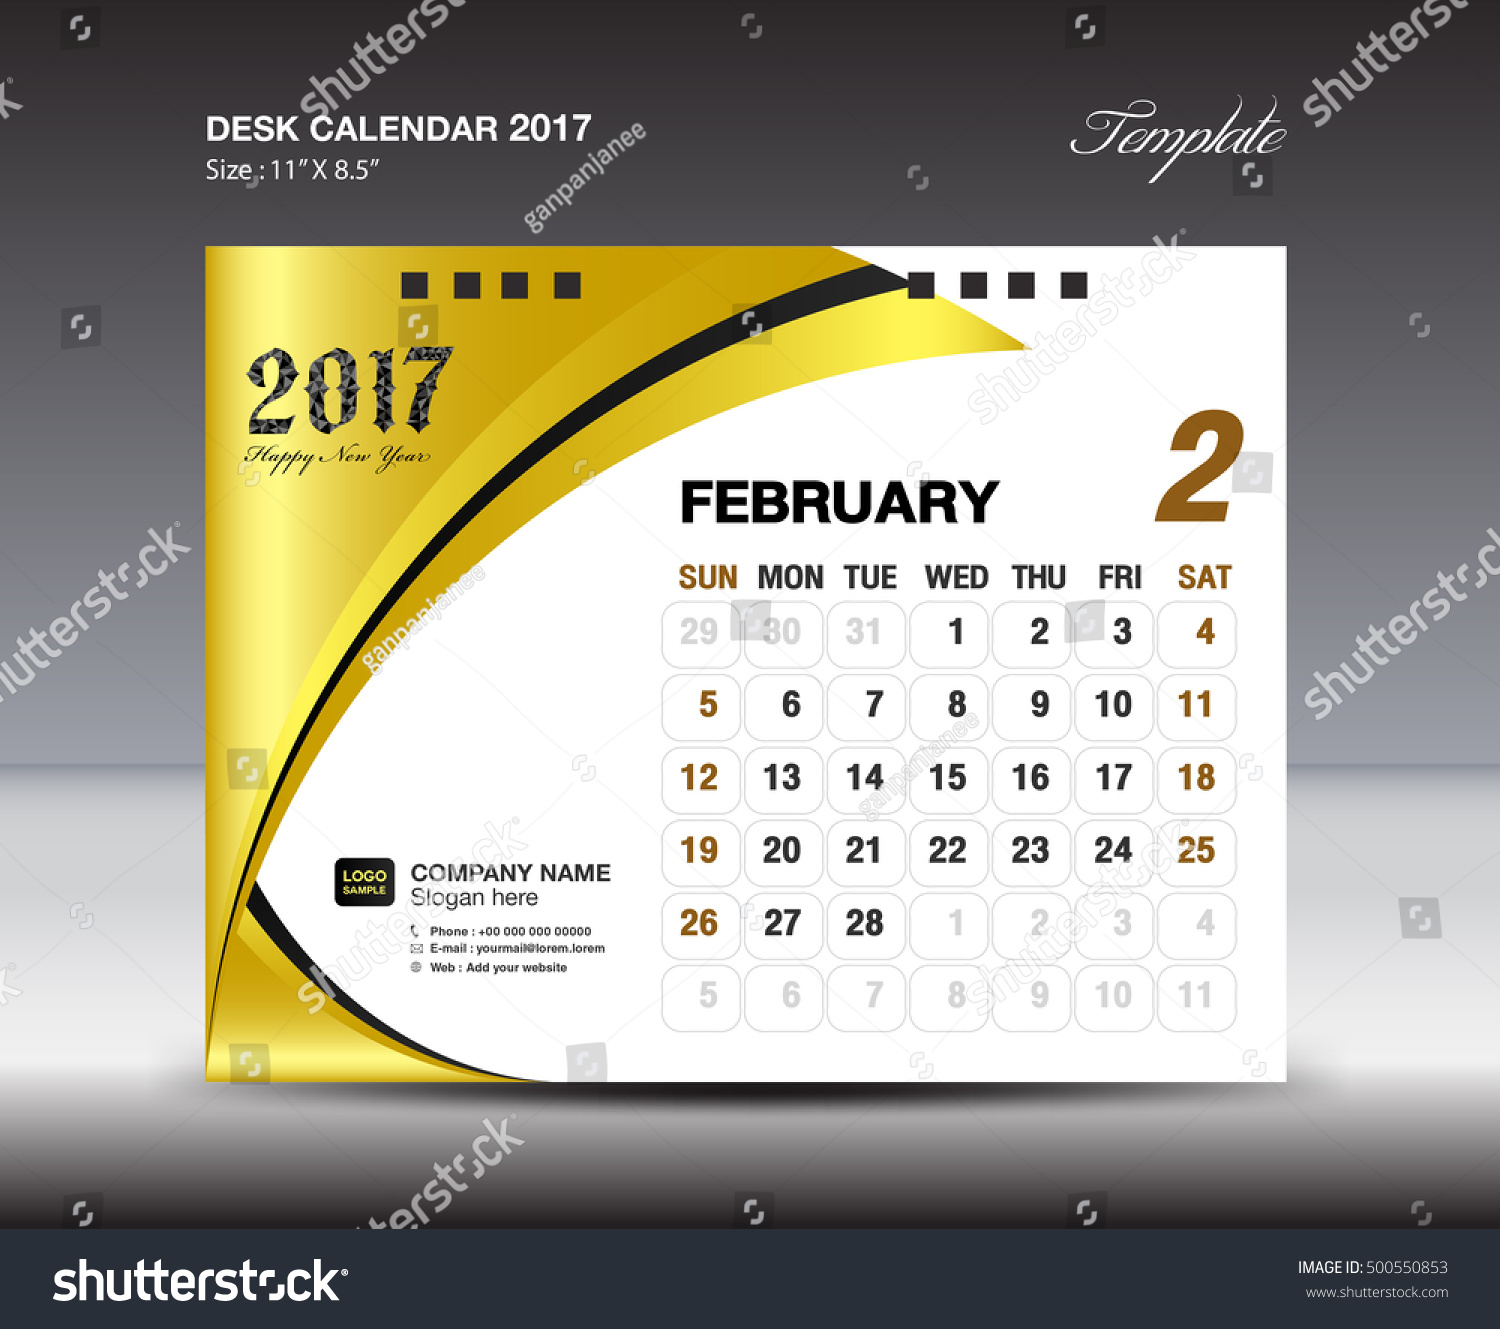 FEBRUARY Desk Calendar 2017 Design Template Stock Photo (Photo ...